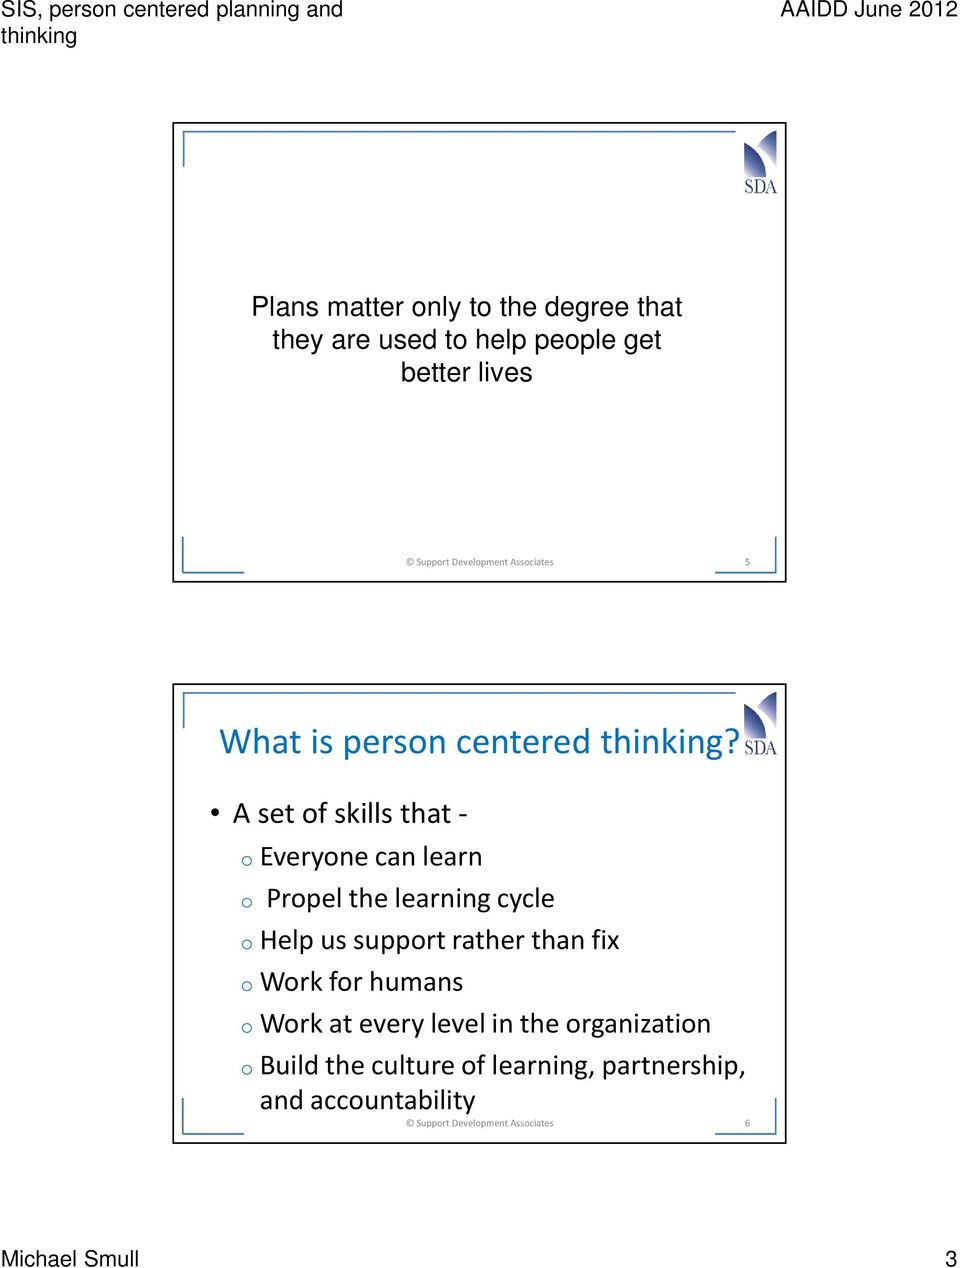 A set of skills that - oeveryone can learn o Propel the learning cycle ohelp us support rather than fix